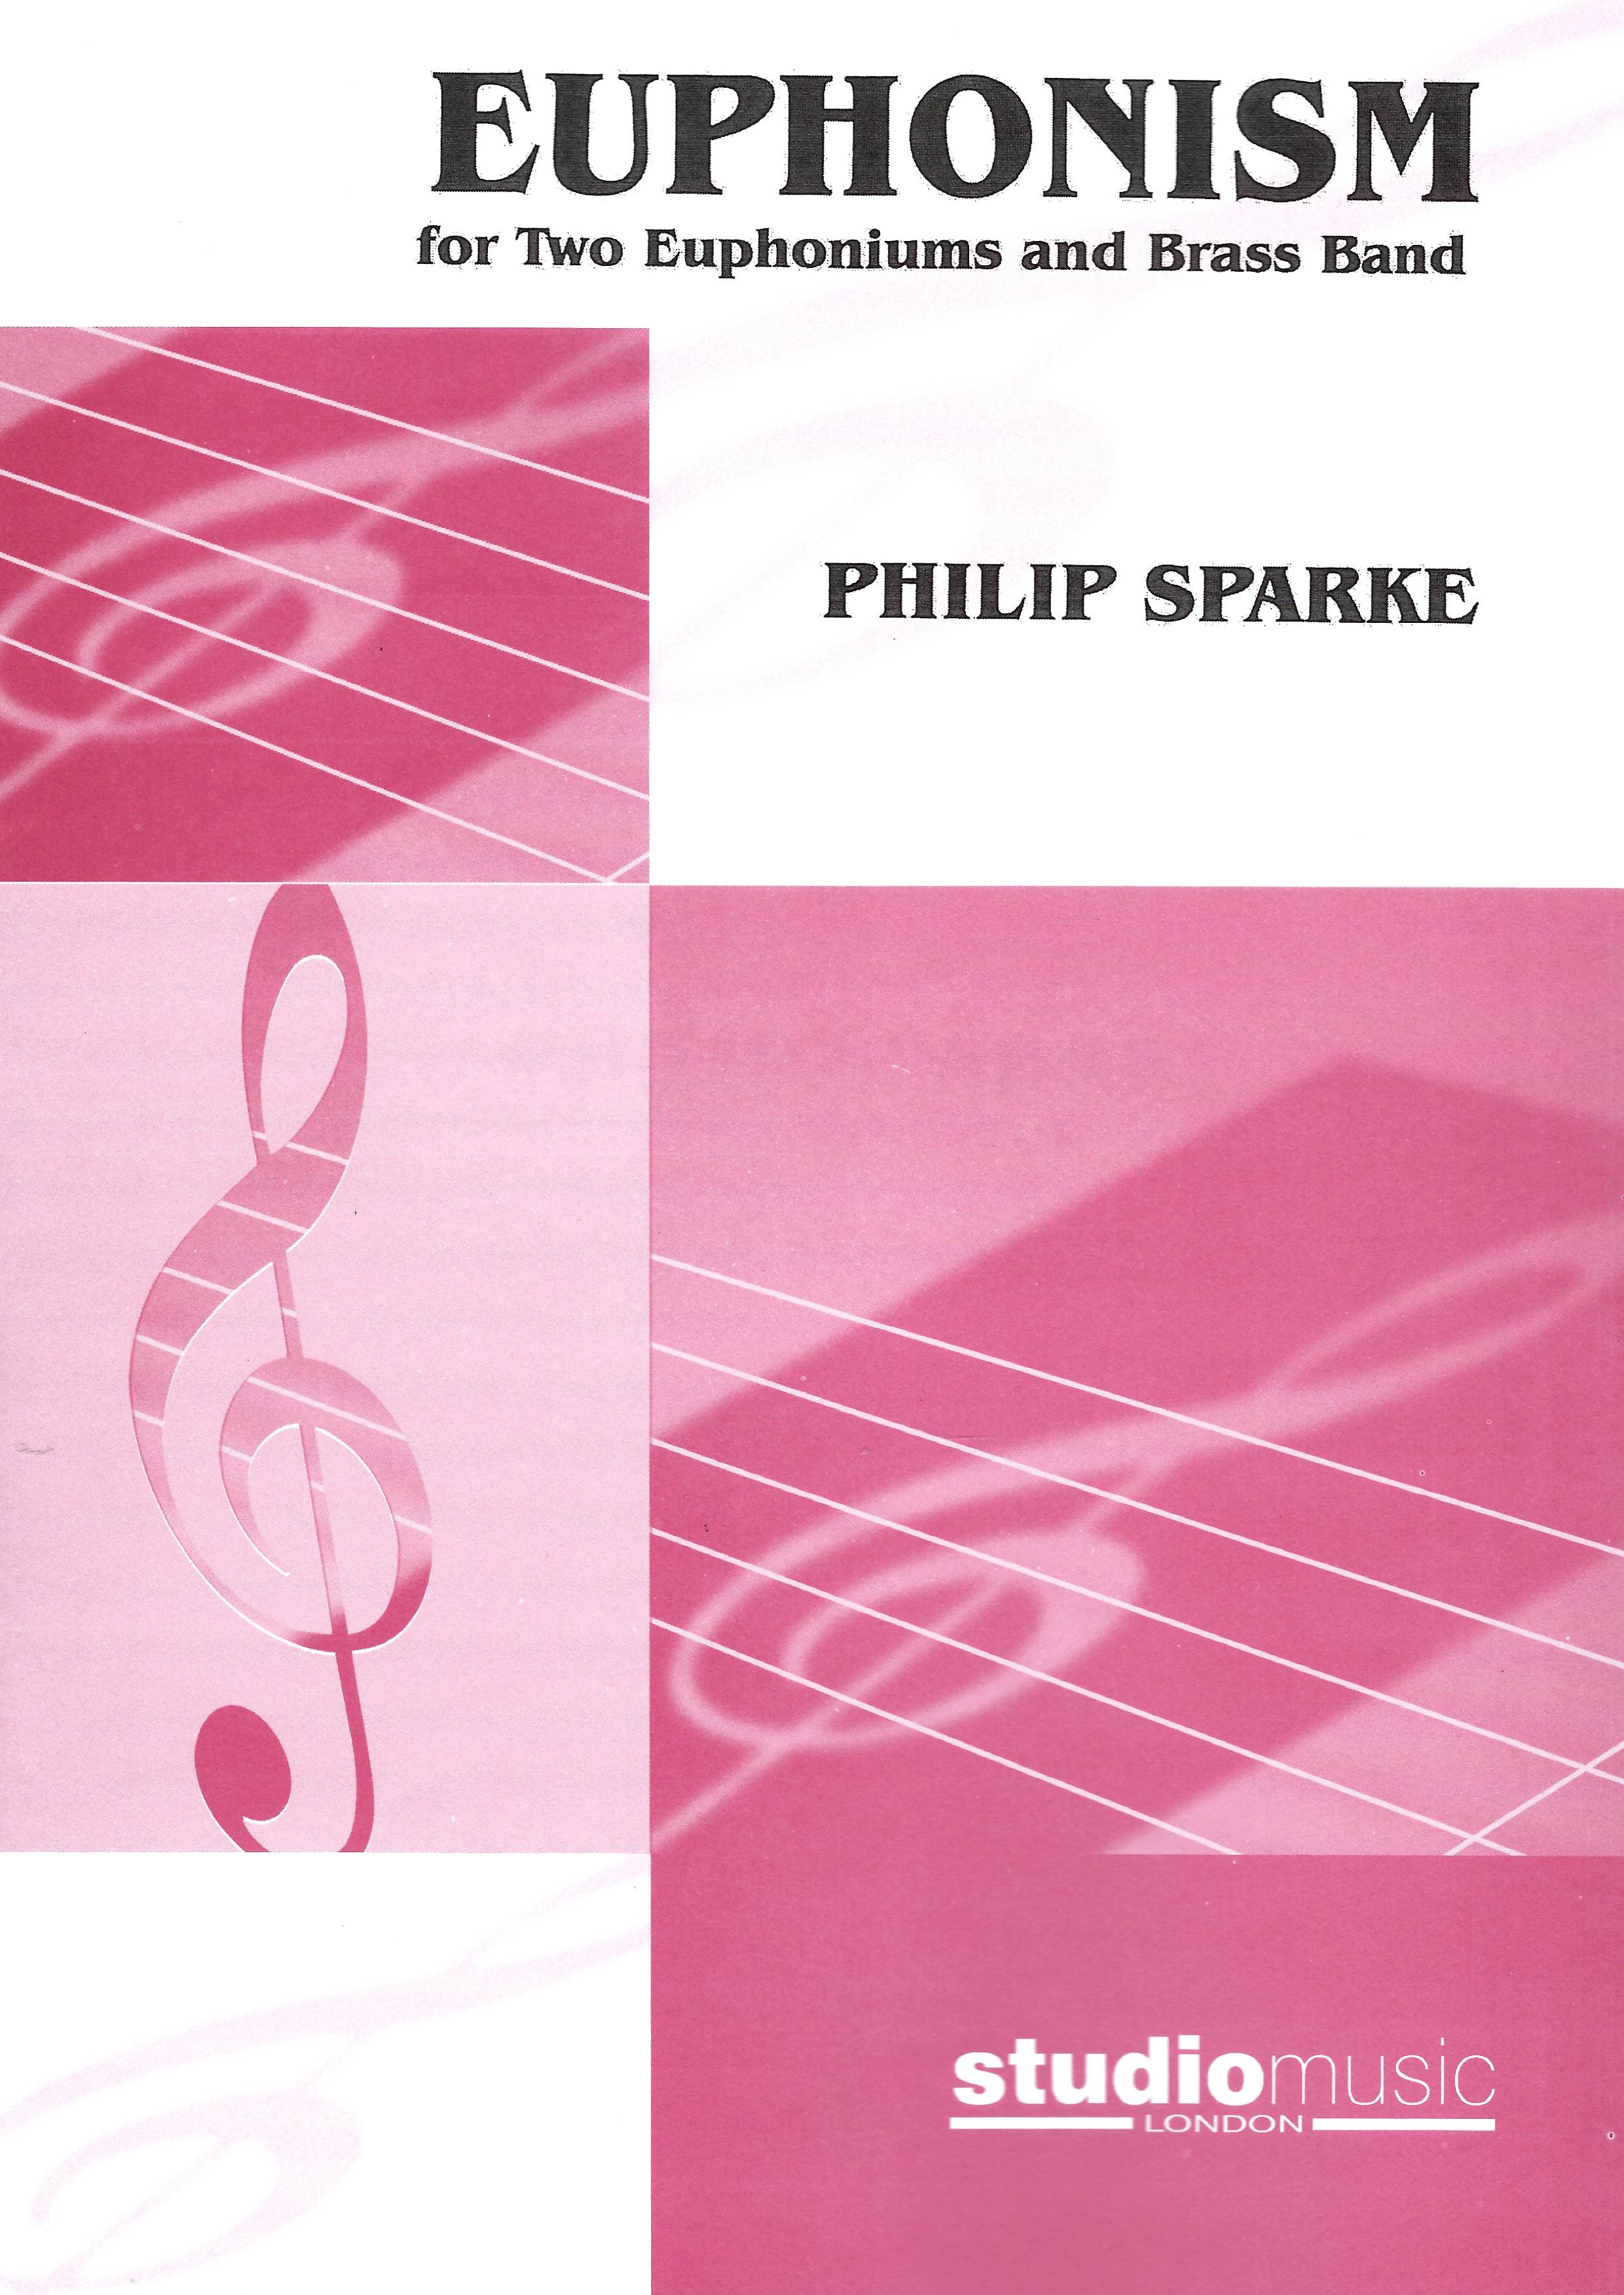 Euphonism - Philip Sparke - 2 Euphoniums and brass band